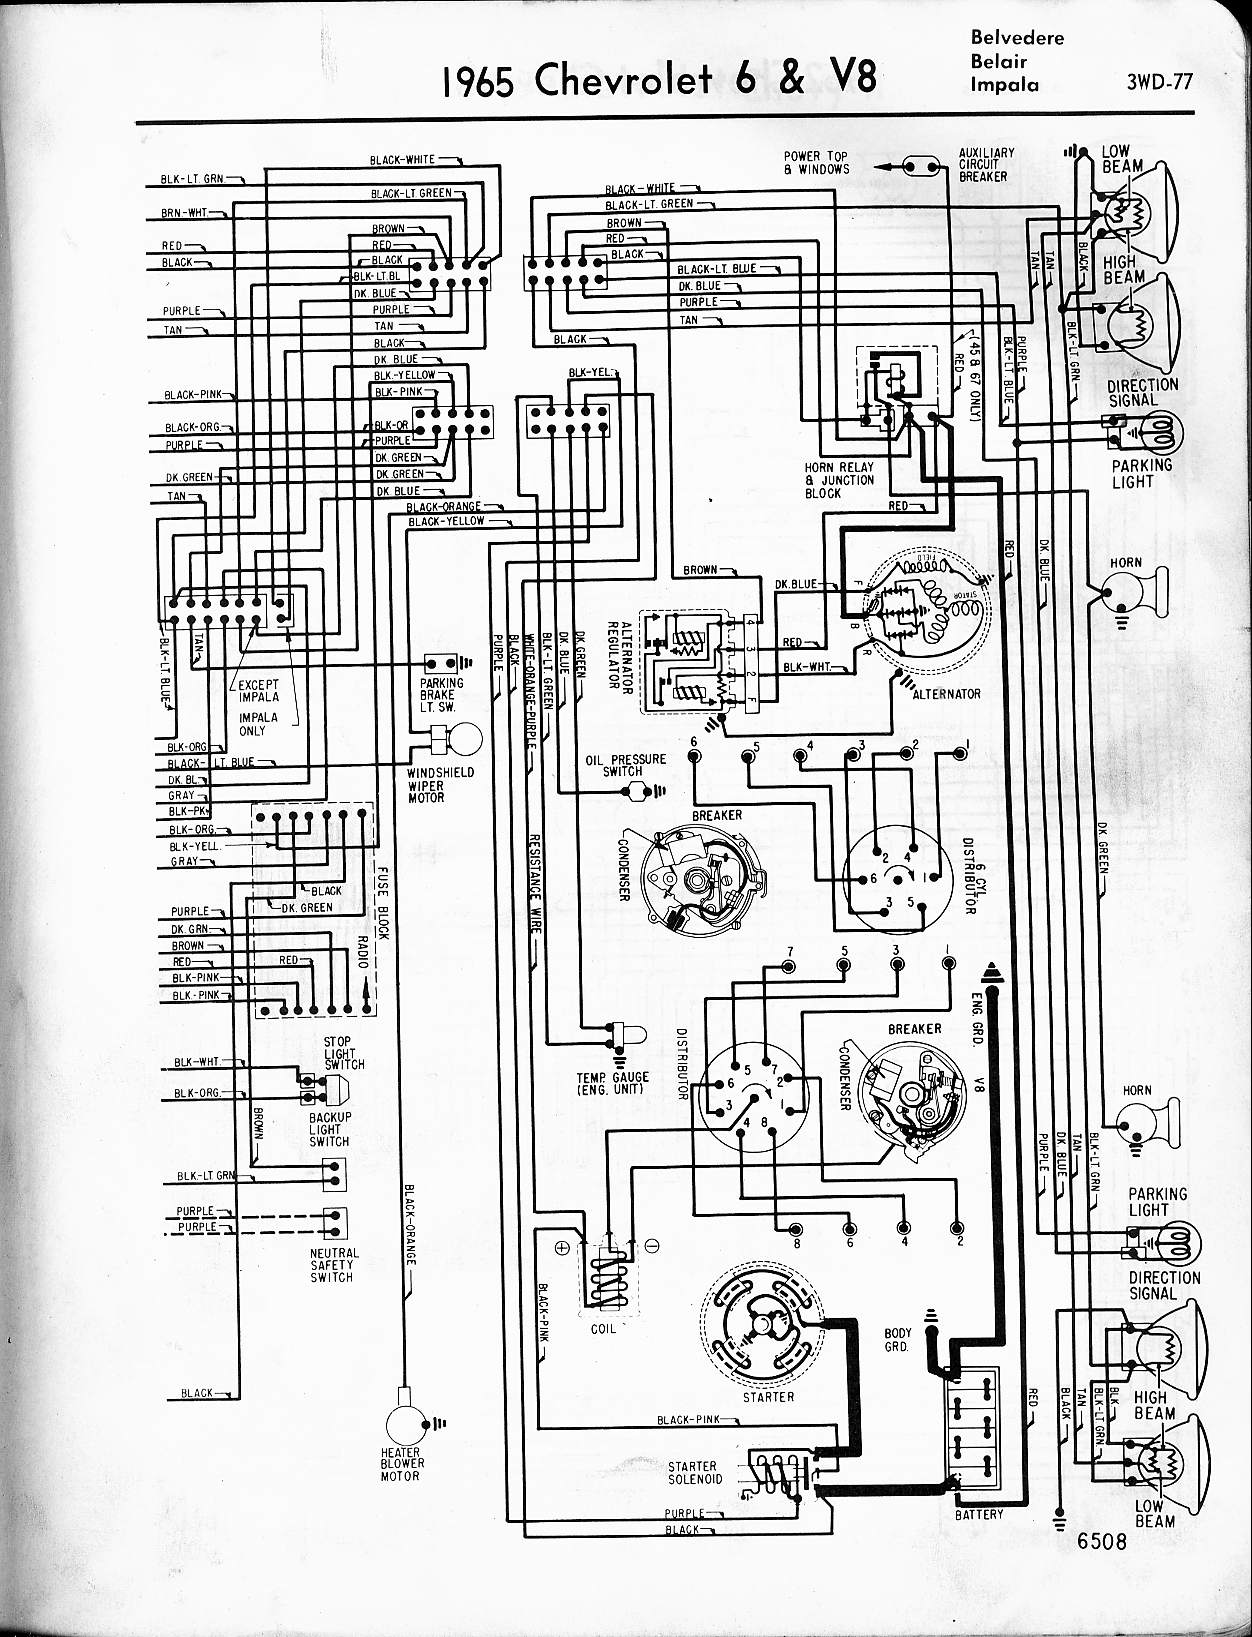 MWireChev65_3WD 077 57 65 chevy wiring diagrams Farmall H Wiring Diagram at crackthecode.co